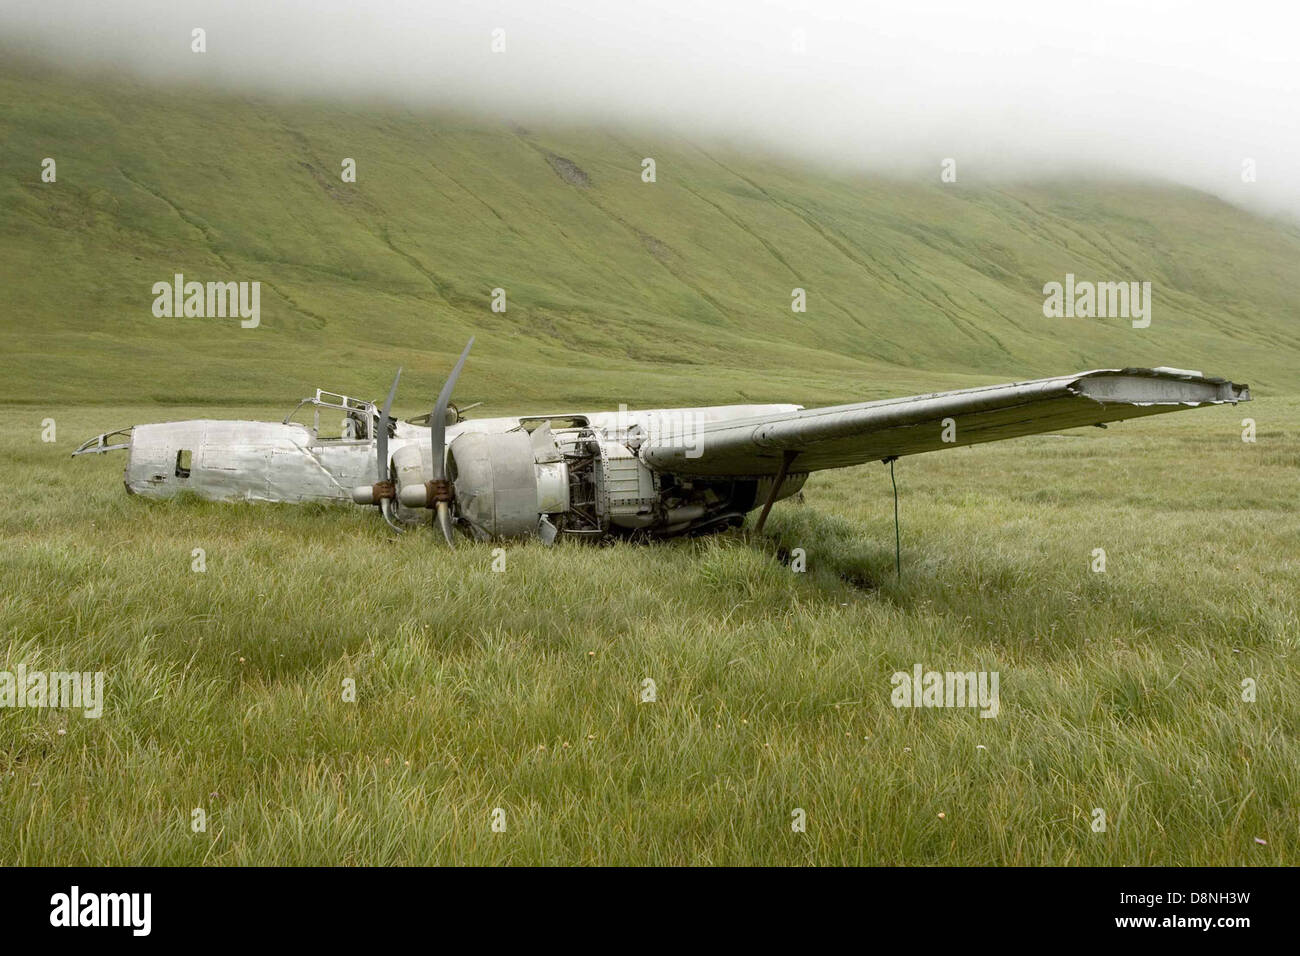 World war 2 plane wreckage. - Stock Image